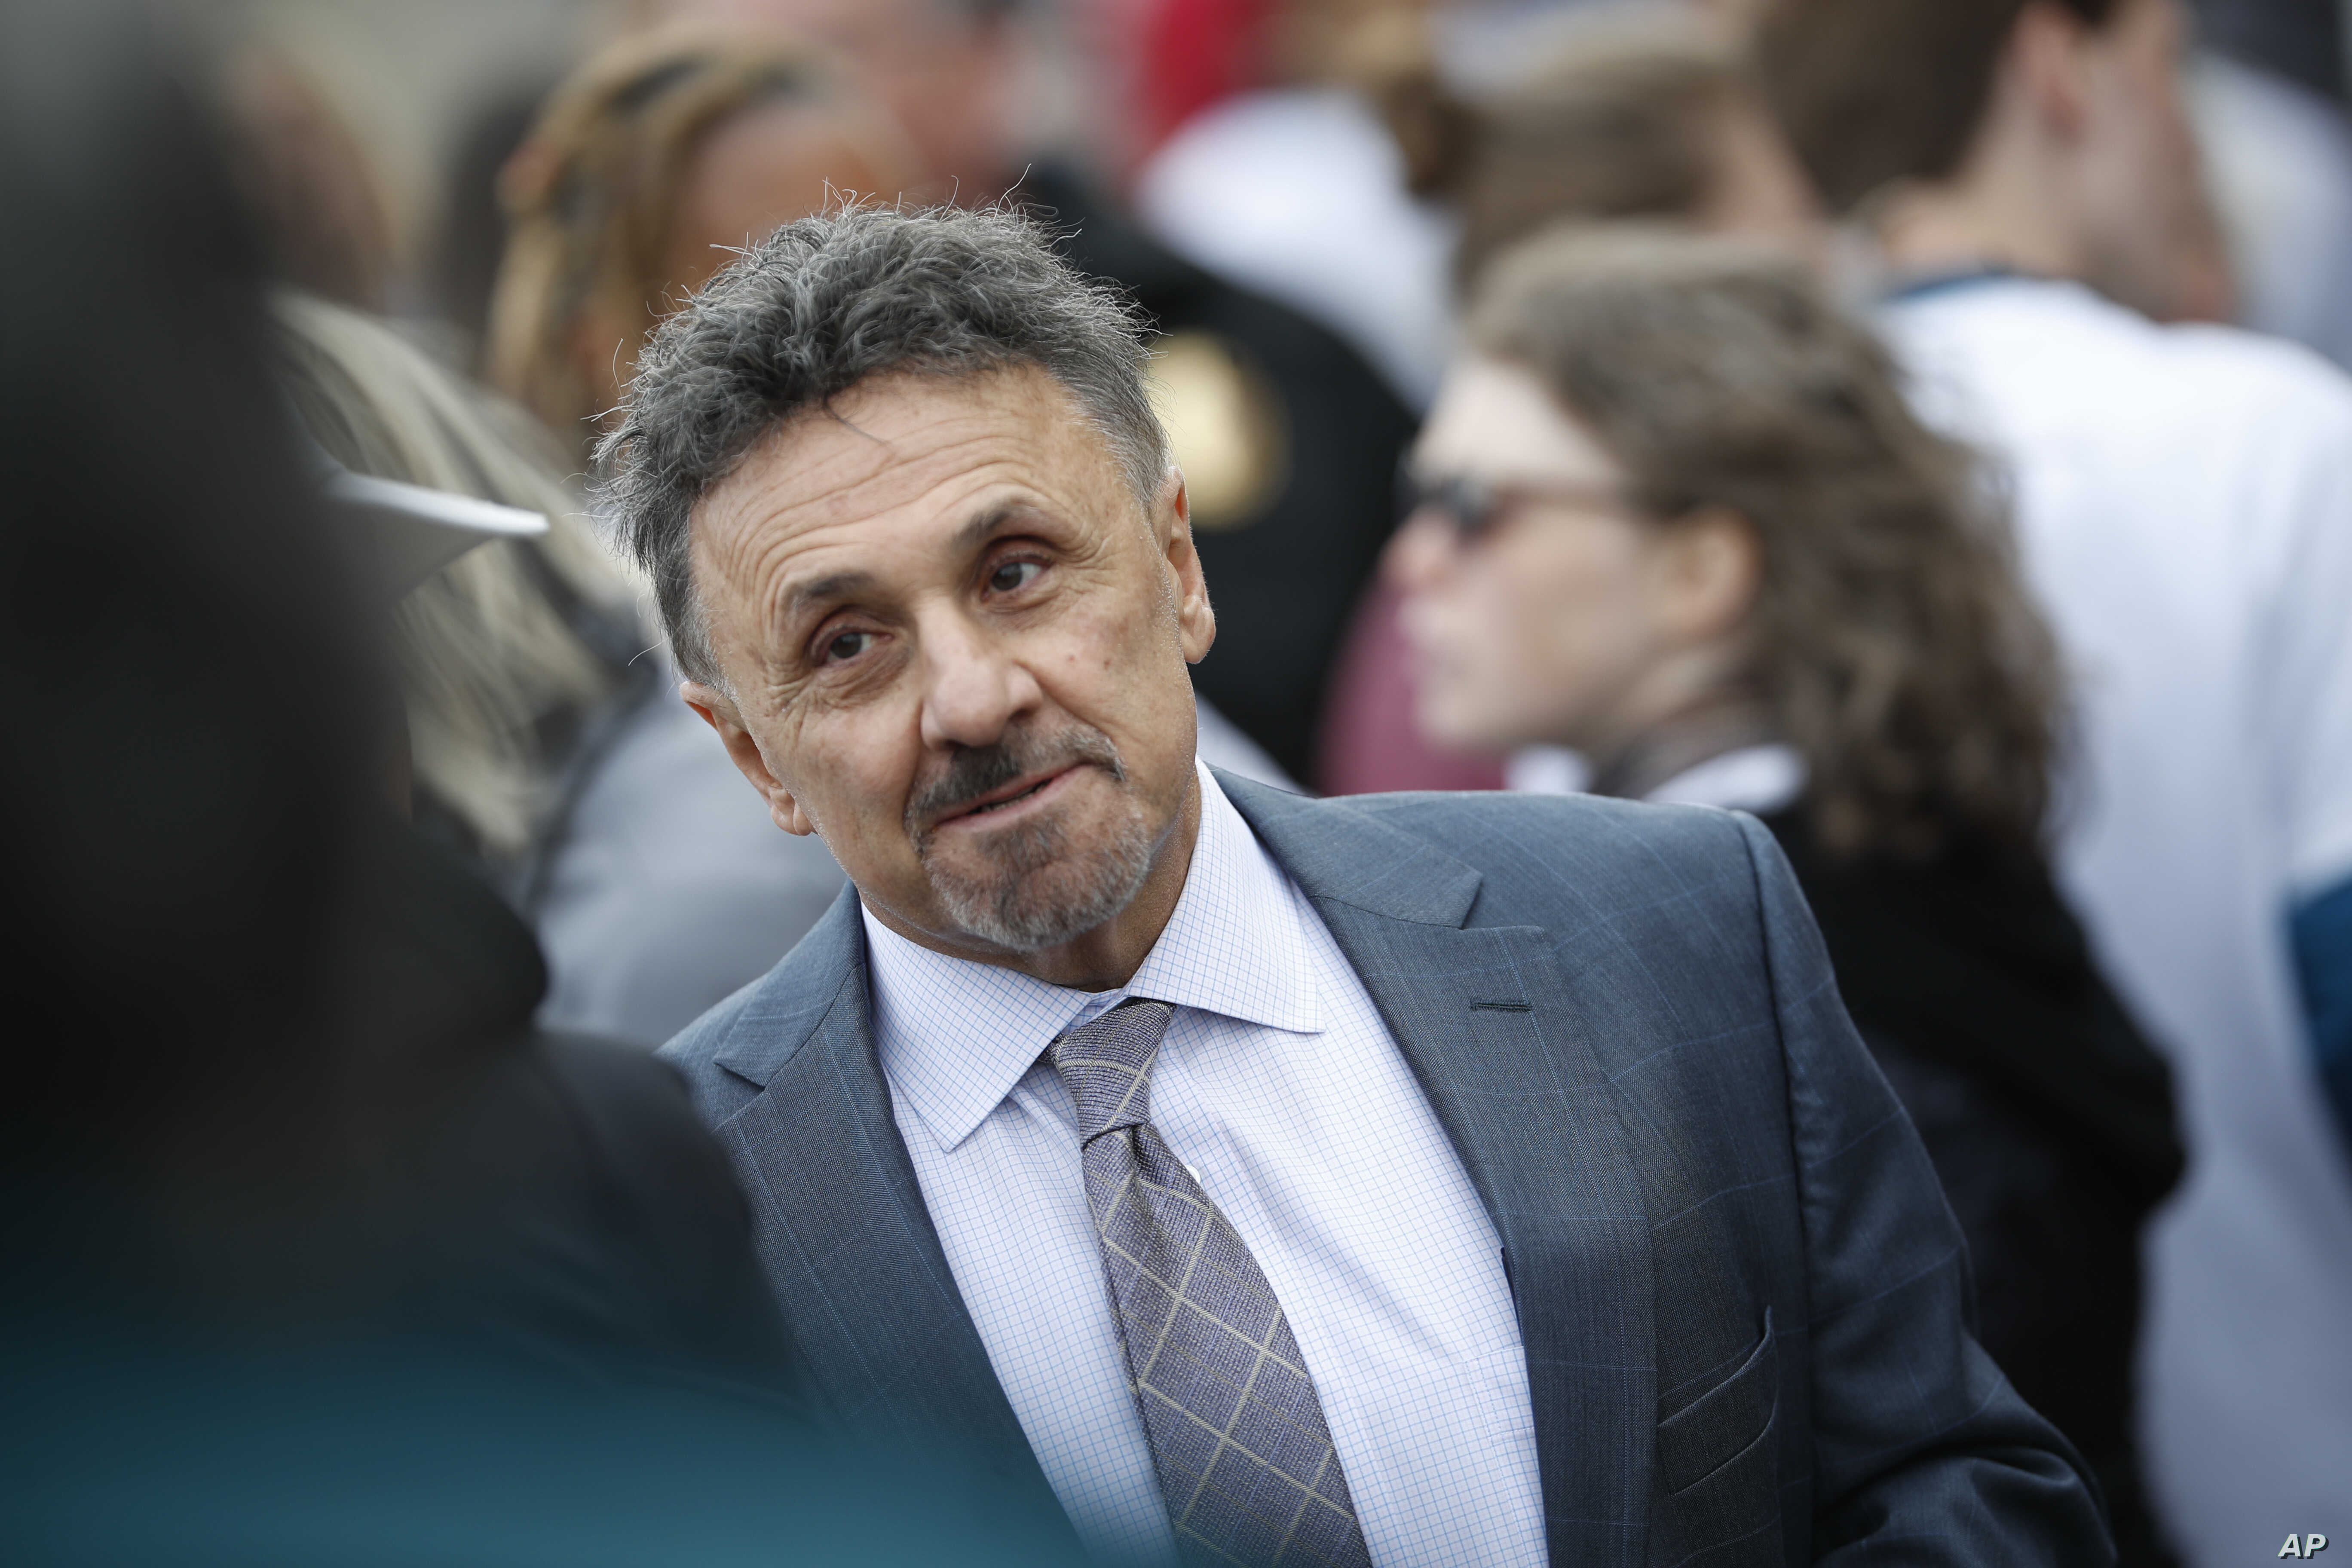 Frank DeAngelis, who was the principal of Columbine High School during the shootings, arrives for the Vote For Our Lives movement to register voters, April 19, 2018, at Clement Park in Littleton, Colo.